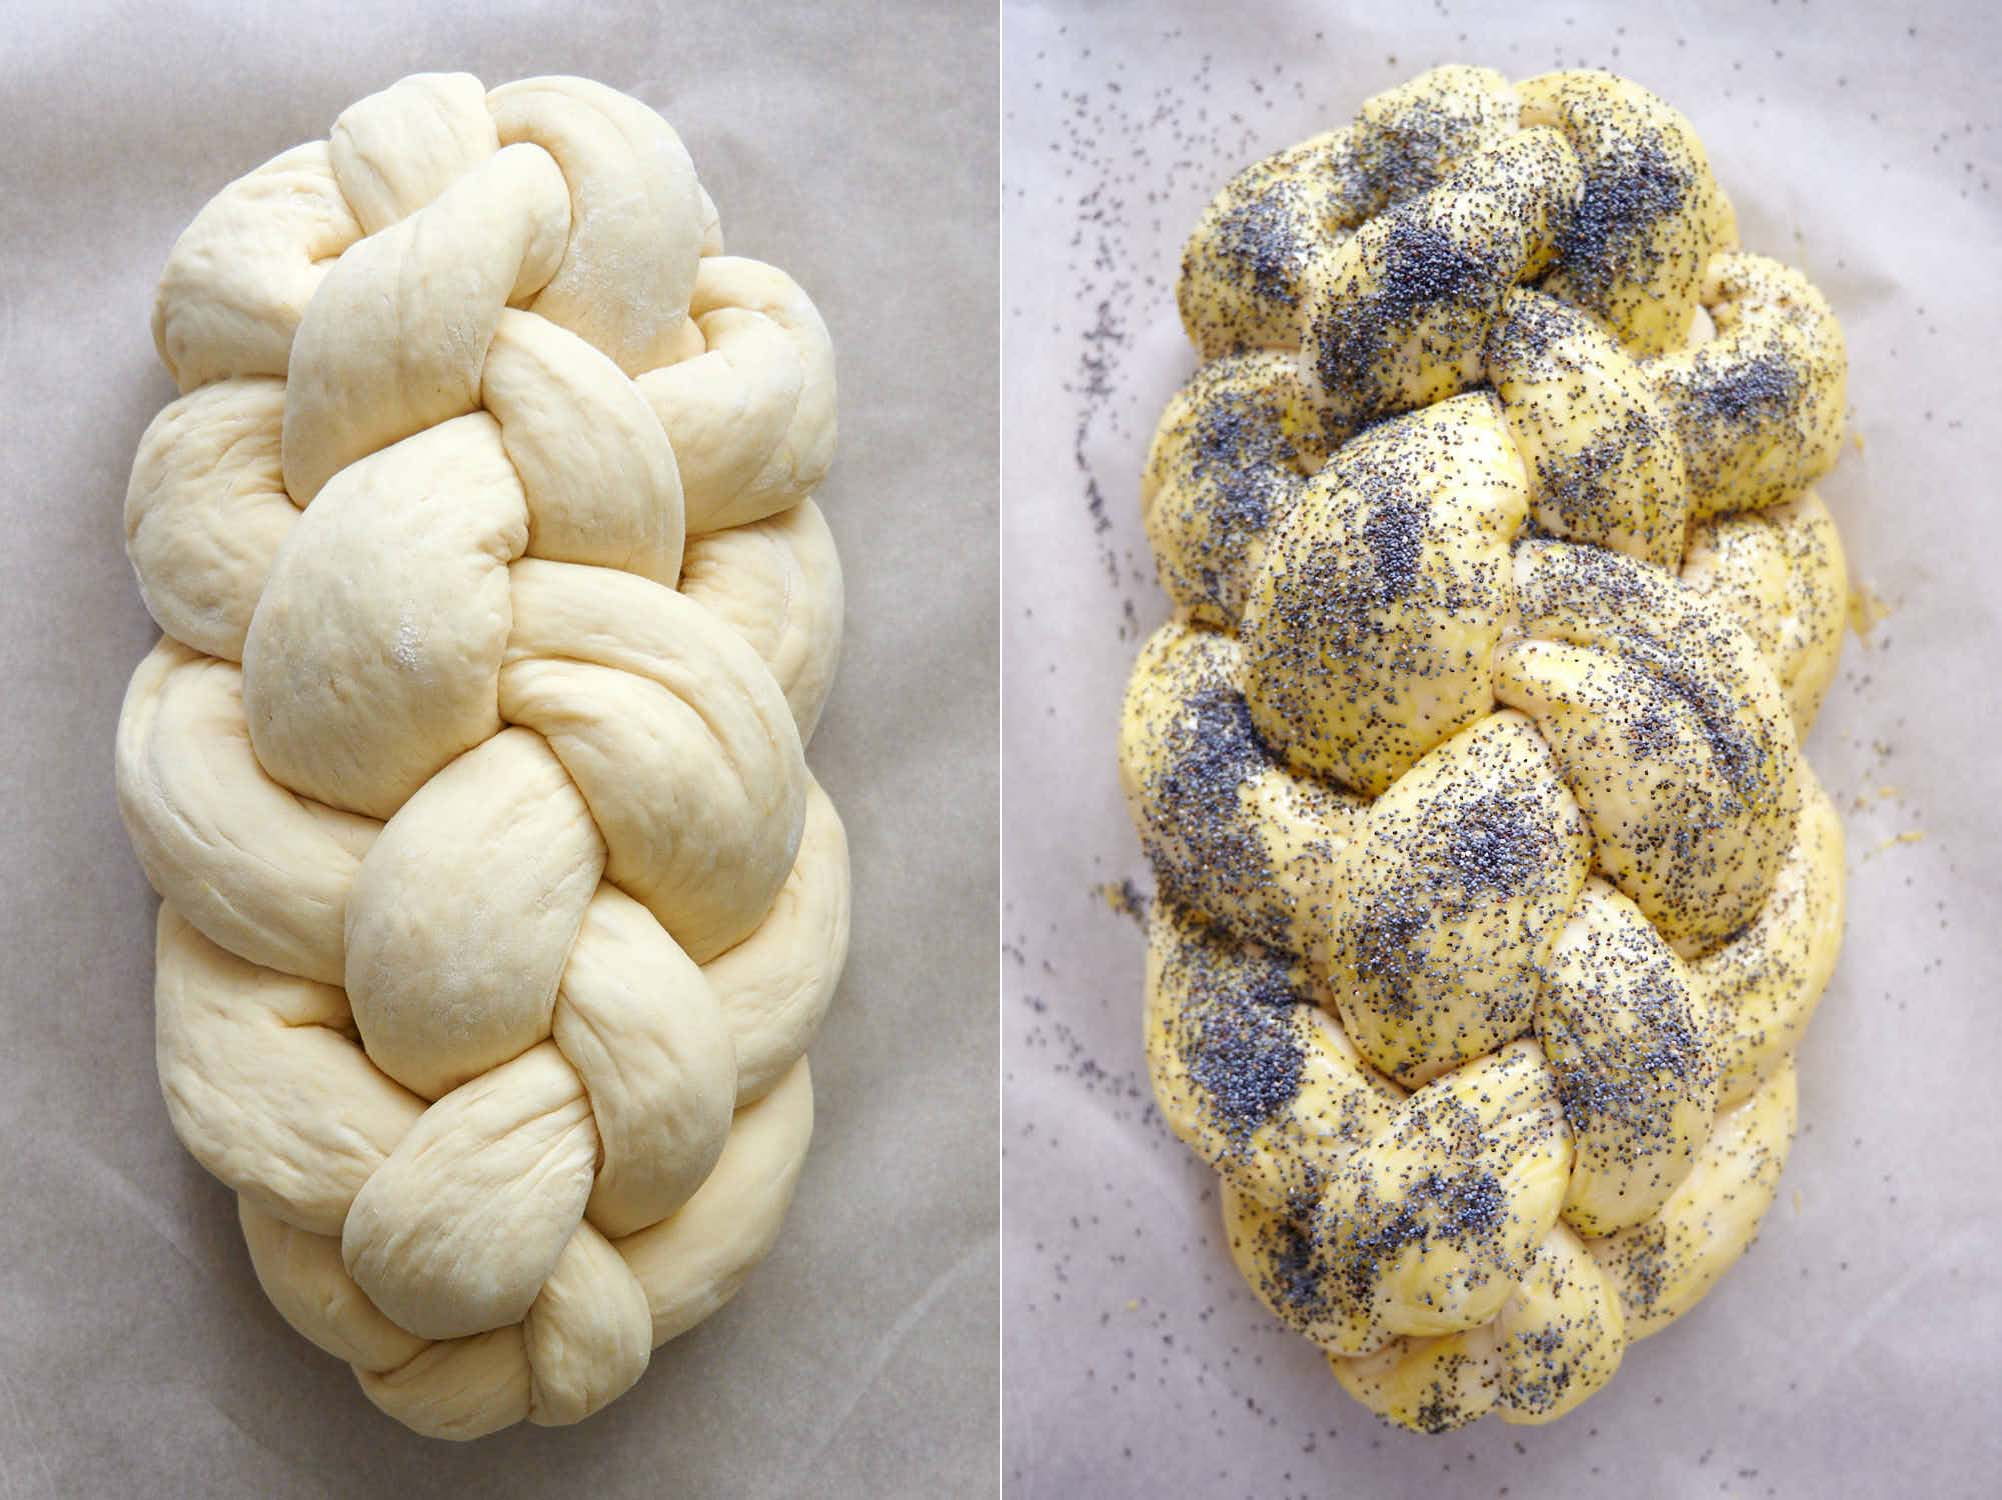 Six-strand braided challah bread example.